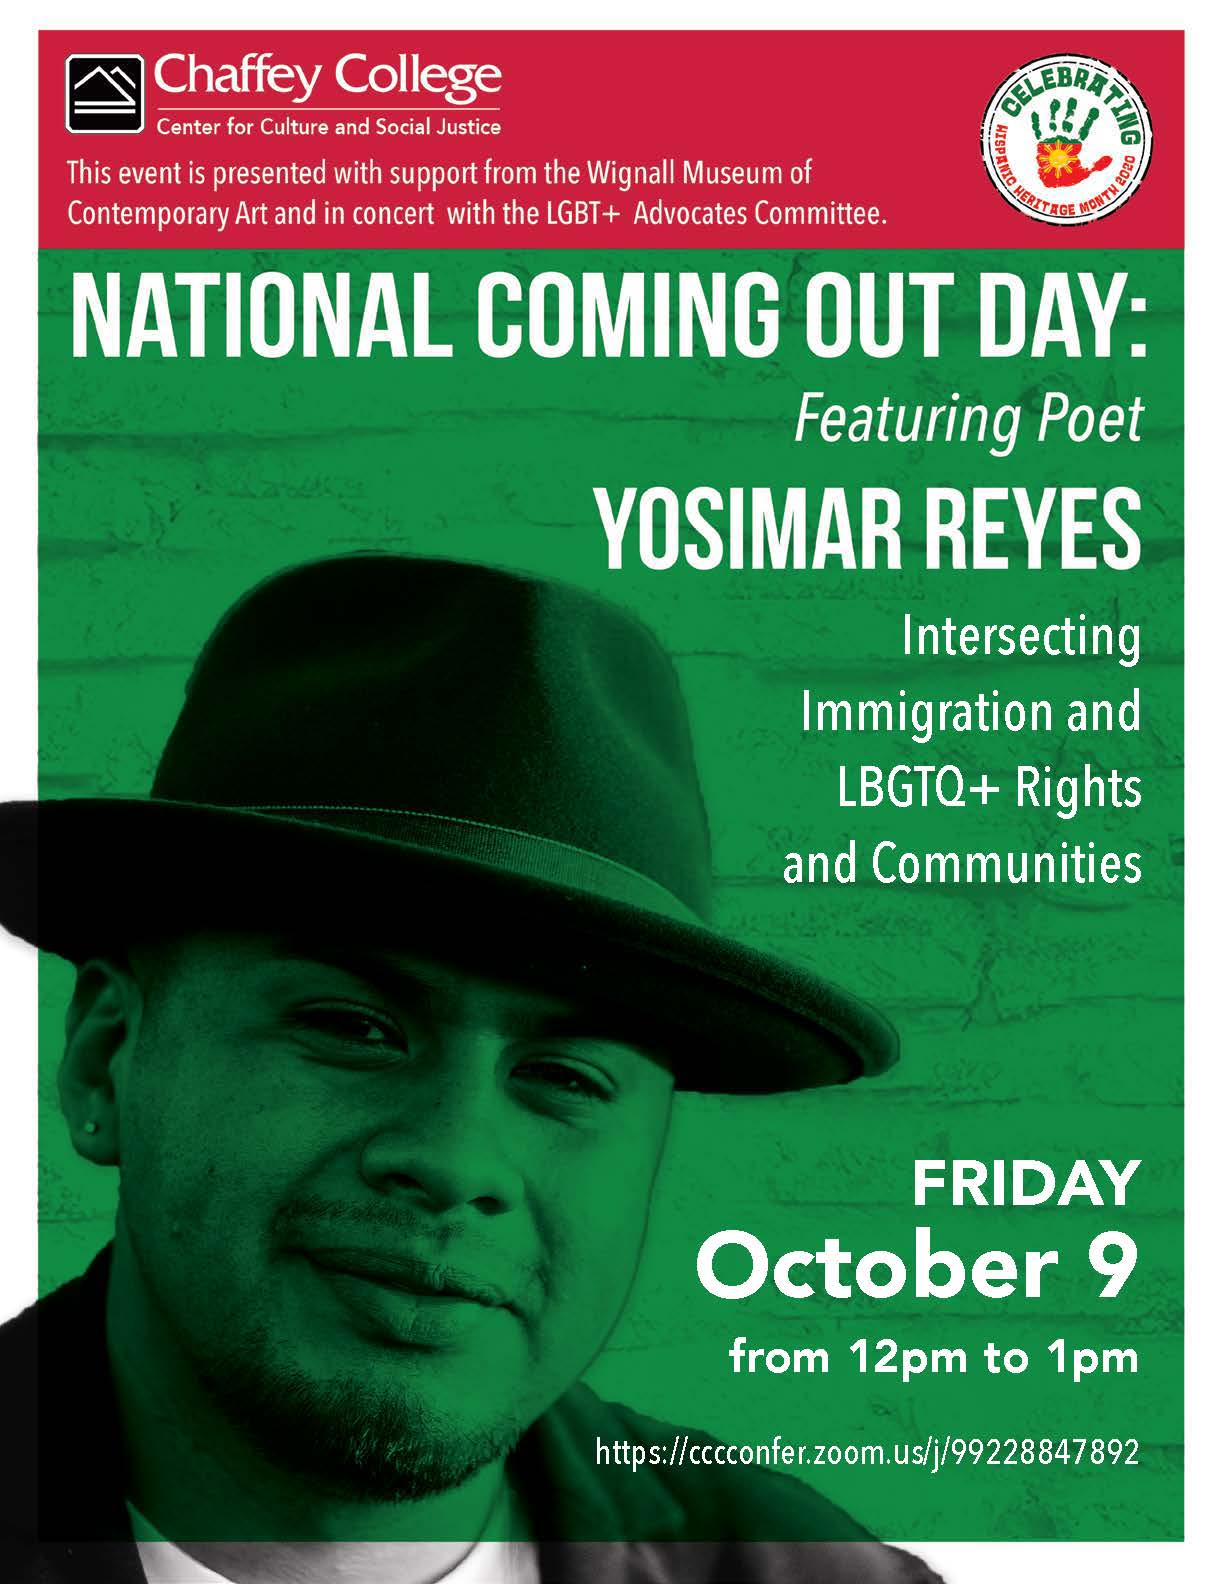 National Coming Out Day: Featuring Poet Yosimar Reyes Intersecting Immigration and LBGTQ+ Rights and Communities